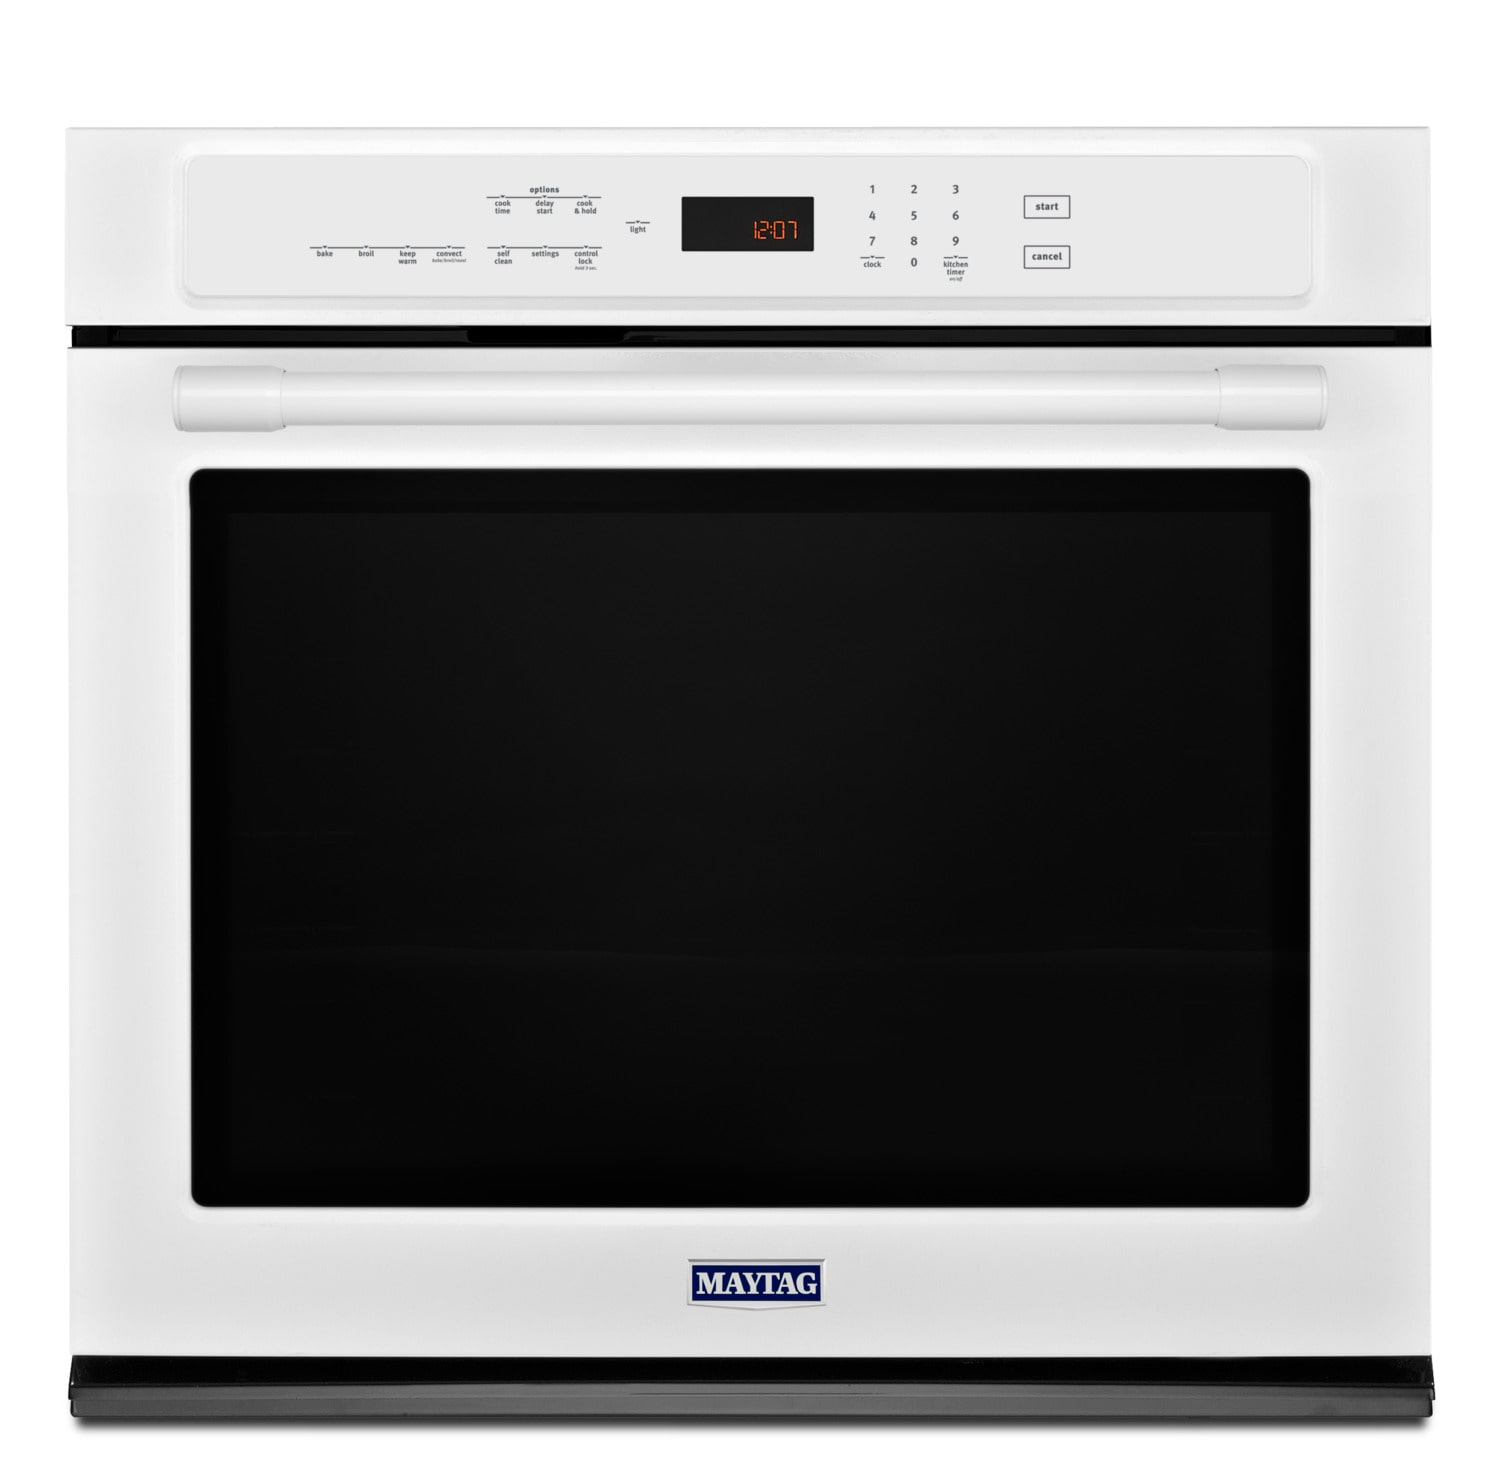 Maytag White Electric Convection Wall Oven (5.0 Cu. Ft.) - MEW9530FW